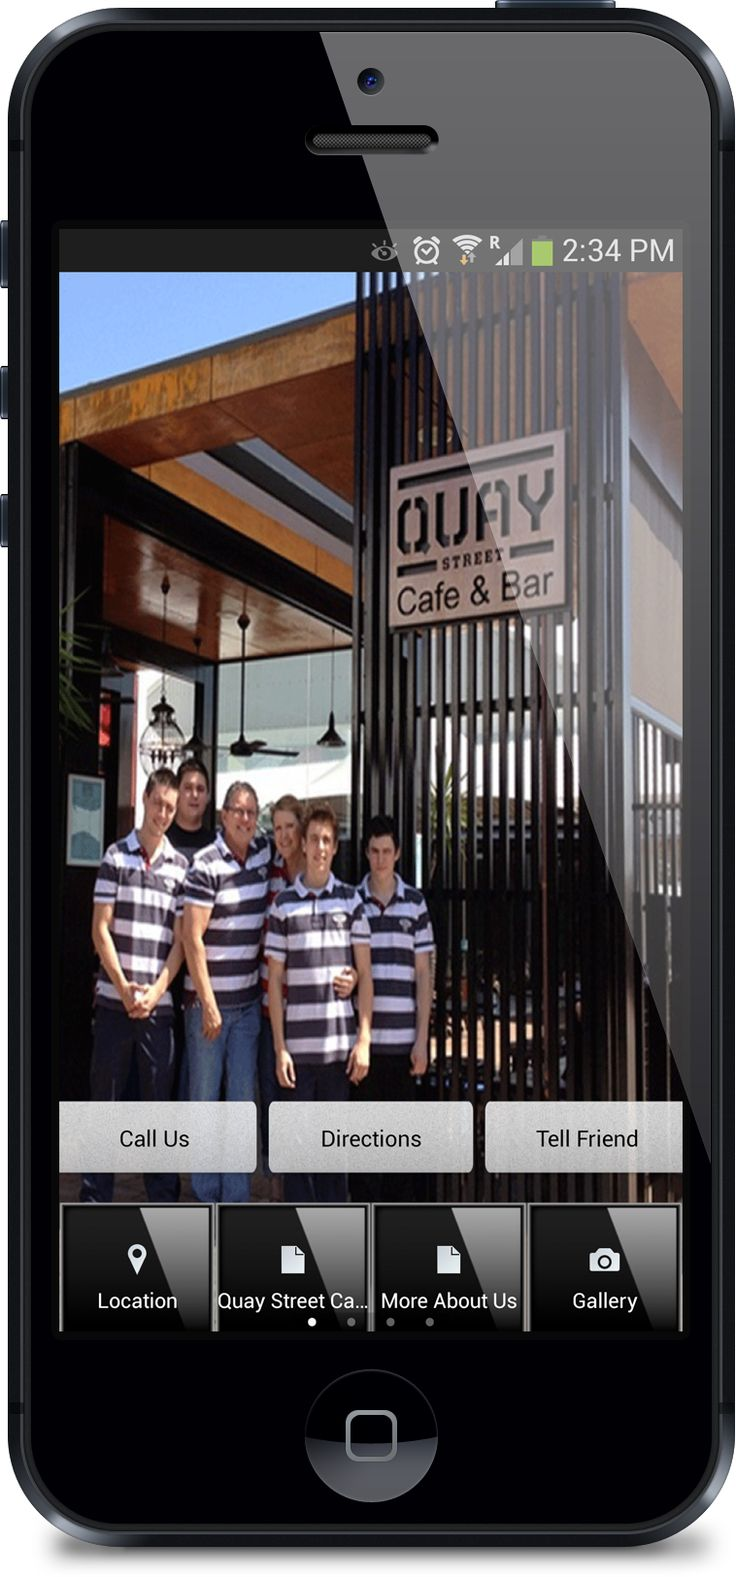 Restaurant Mobile Apps - Marketing tools to communicate with your customers - http://www.mobileappfx.co.nz